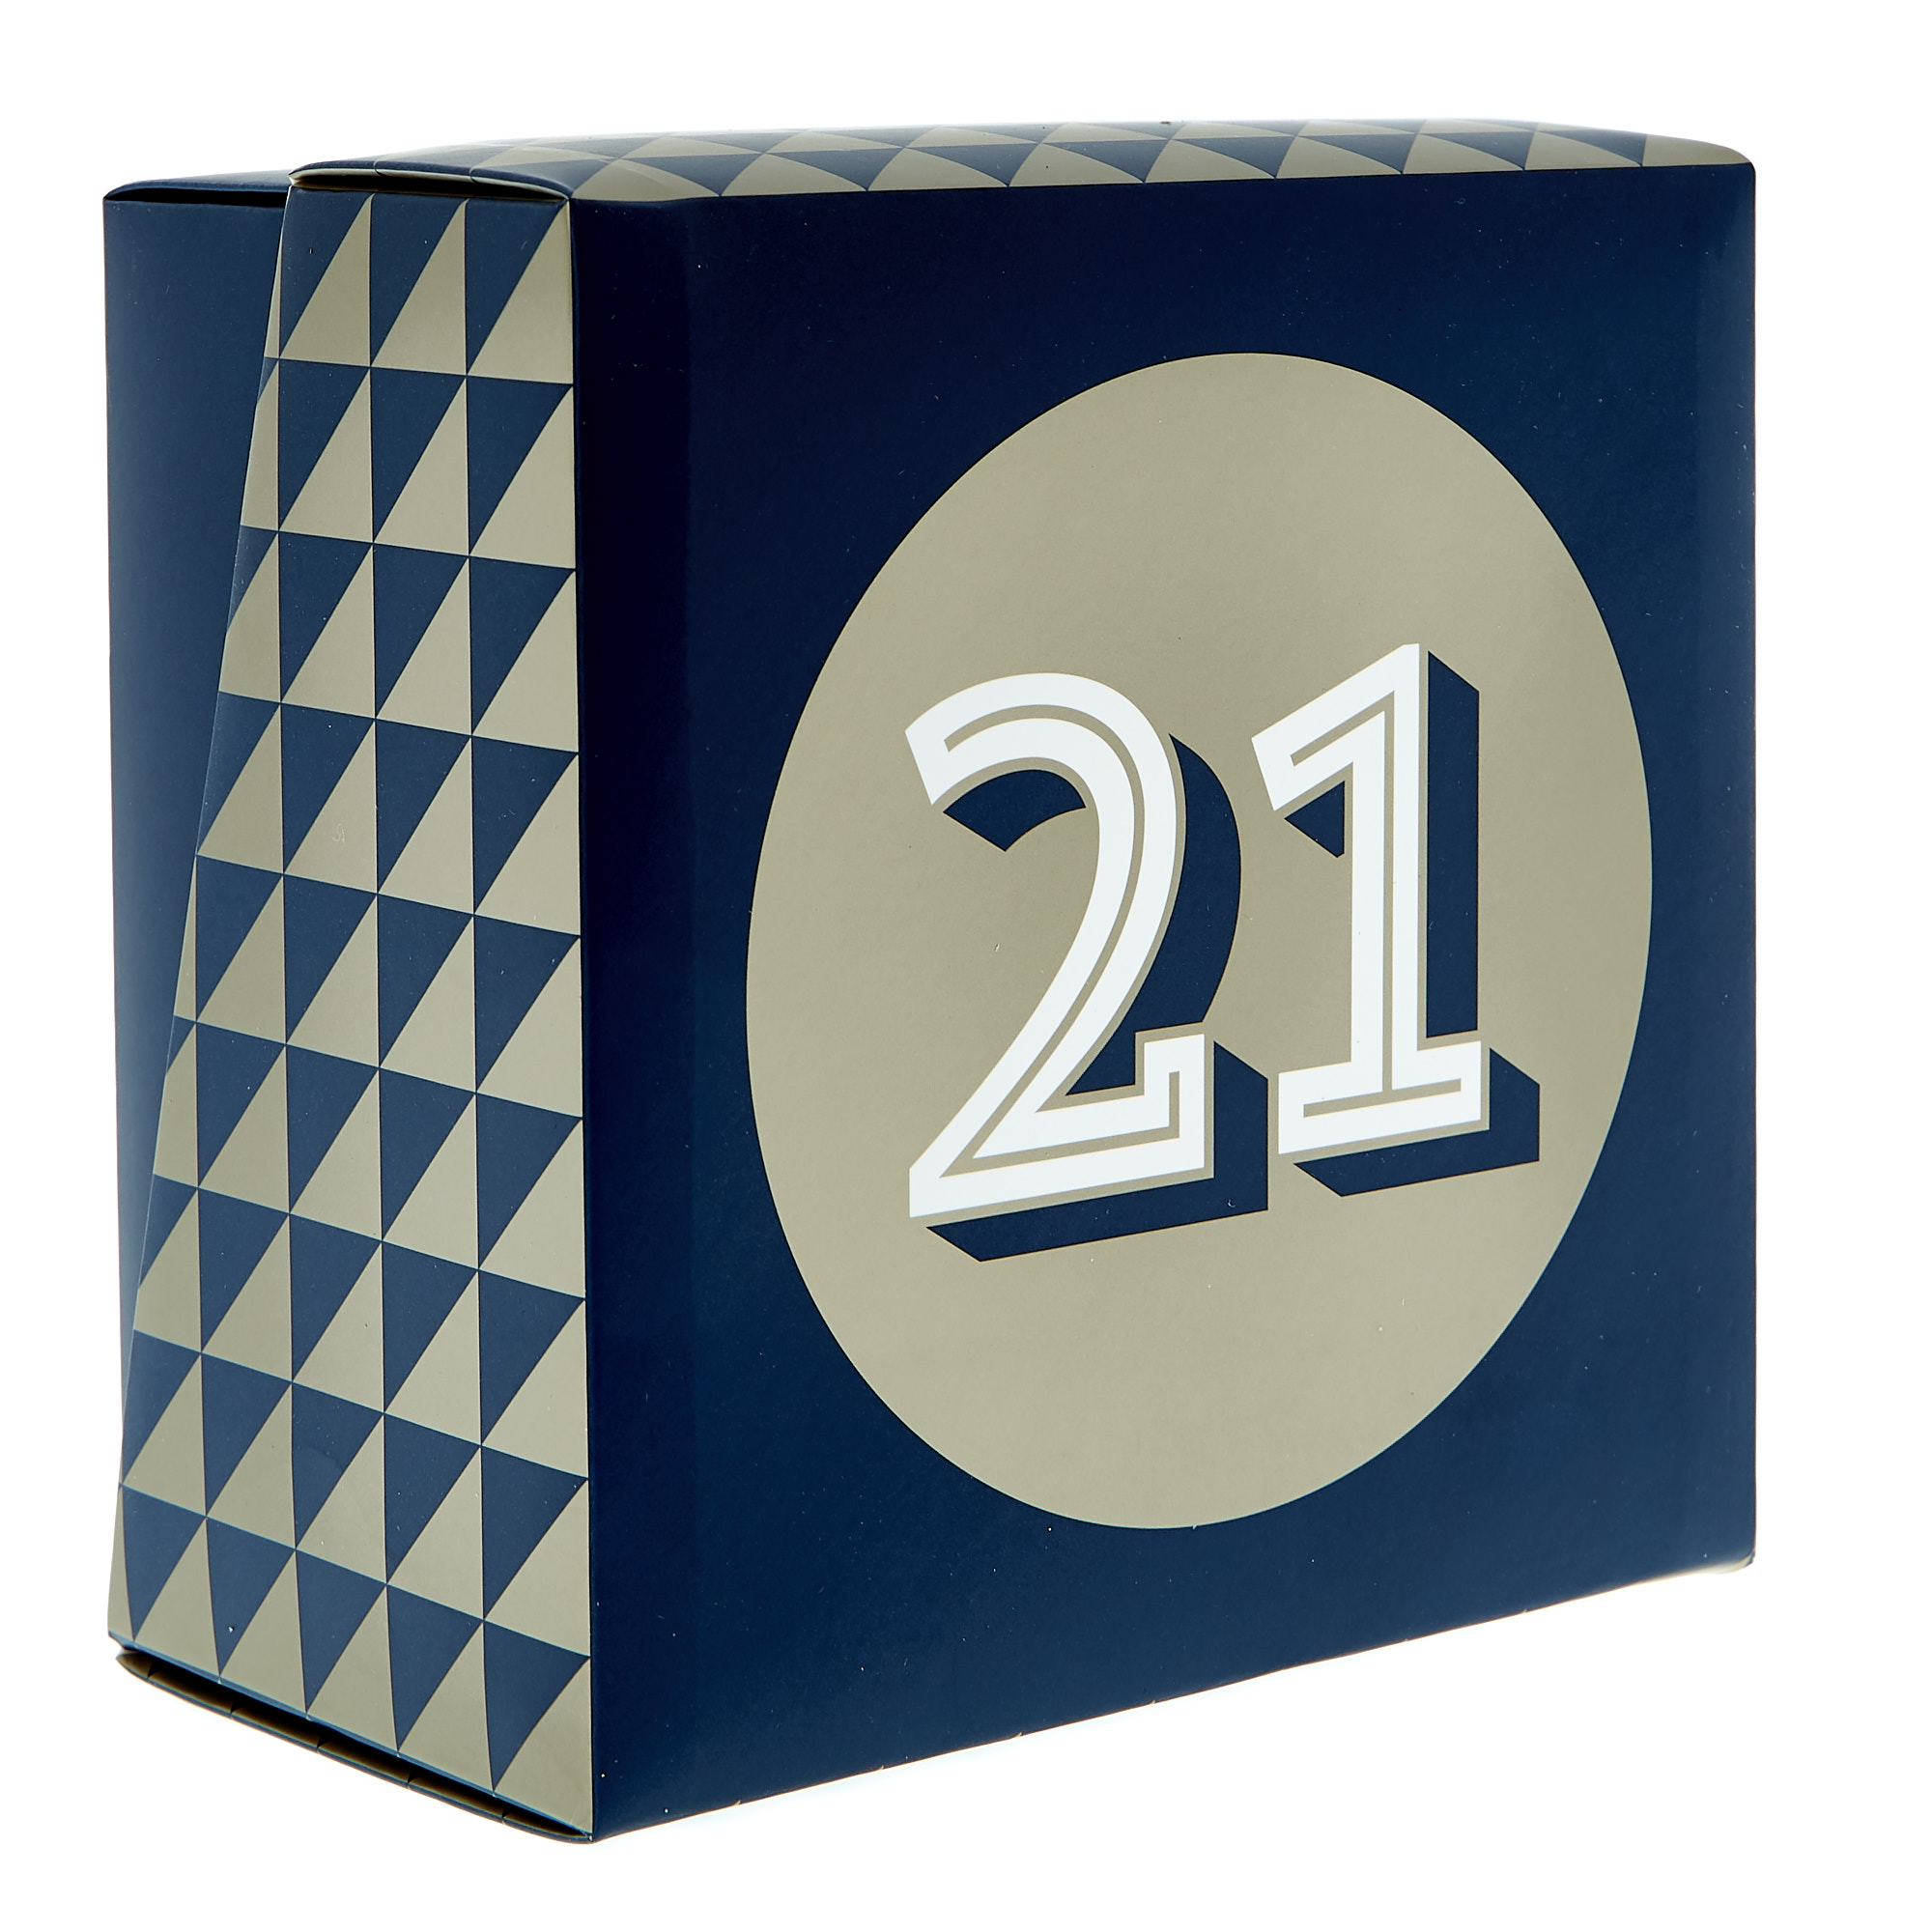 21st Birthday Mug In A Box - Blue & Gold